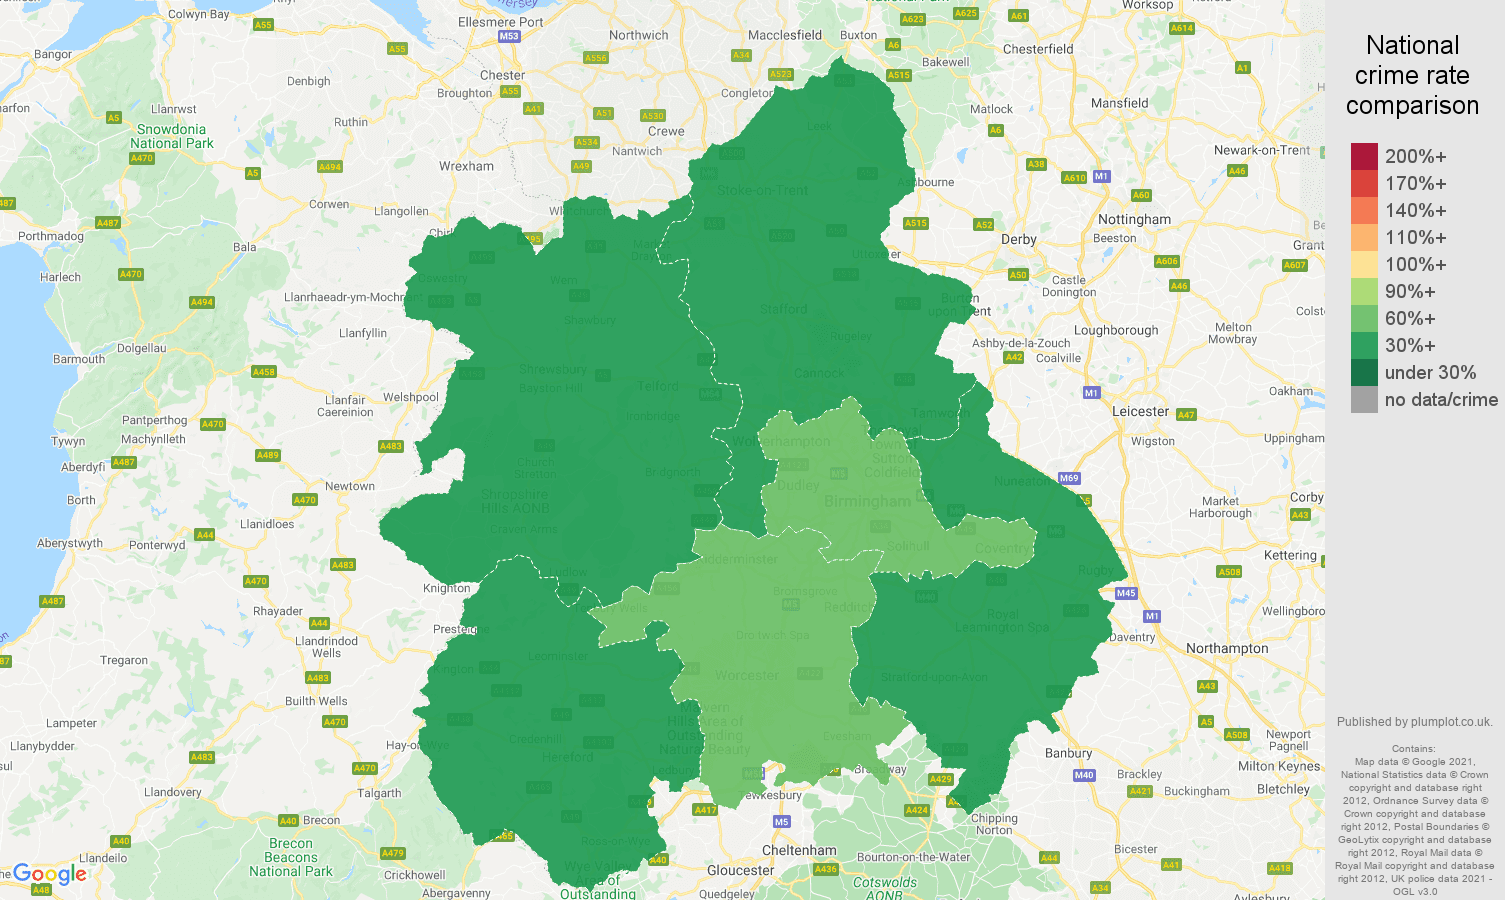 West Midlands bicycle theft crime rate comparison map